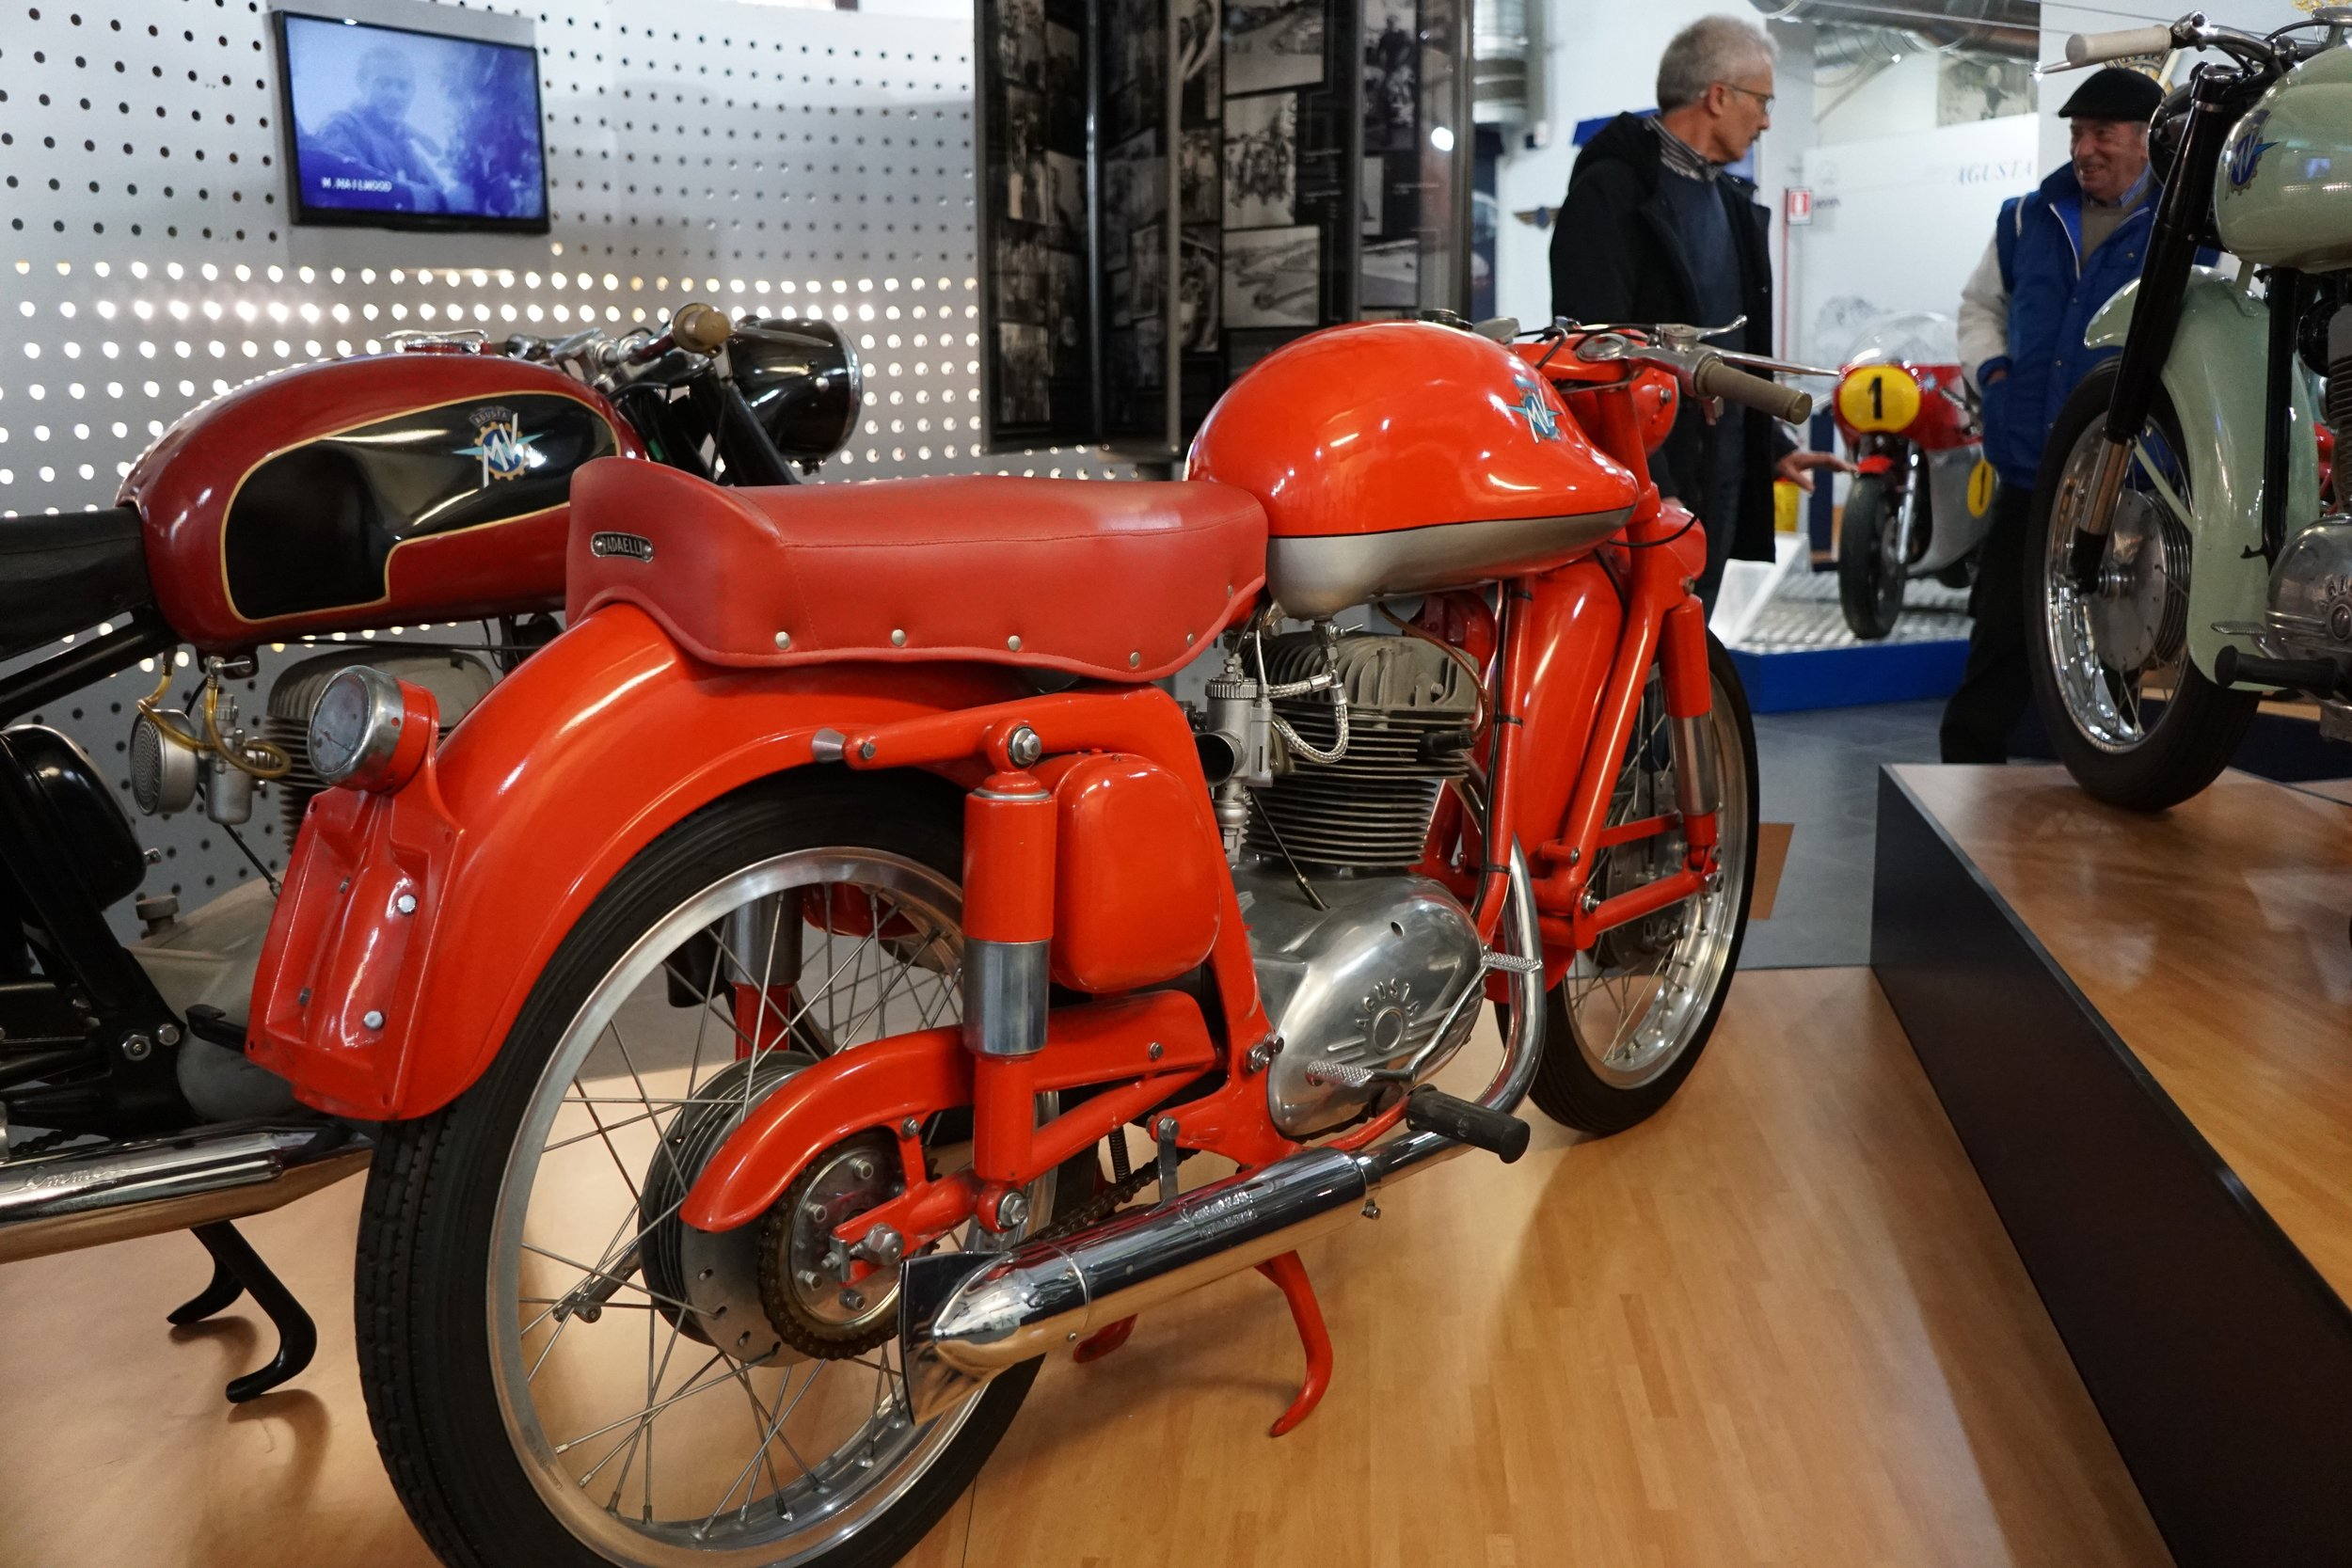 '54 175 CSS – 175cc, SOHC, four speeds. About 500 were made like this, with the characteristic 'flying saucer' fuel tank and Earles fork.